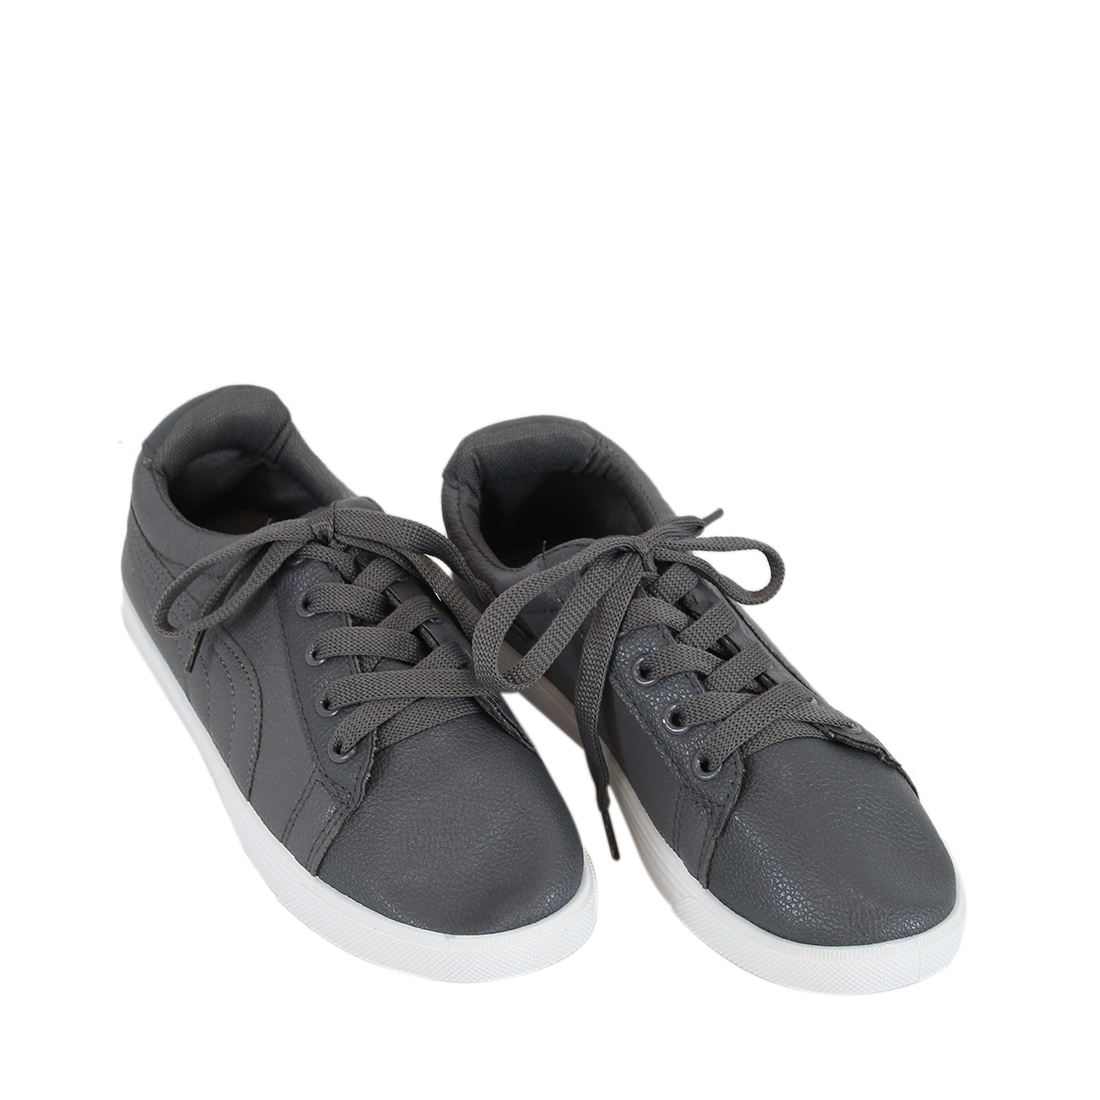 Plain soft leather low top sneakers